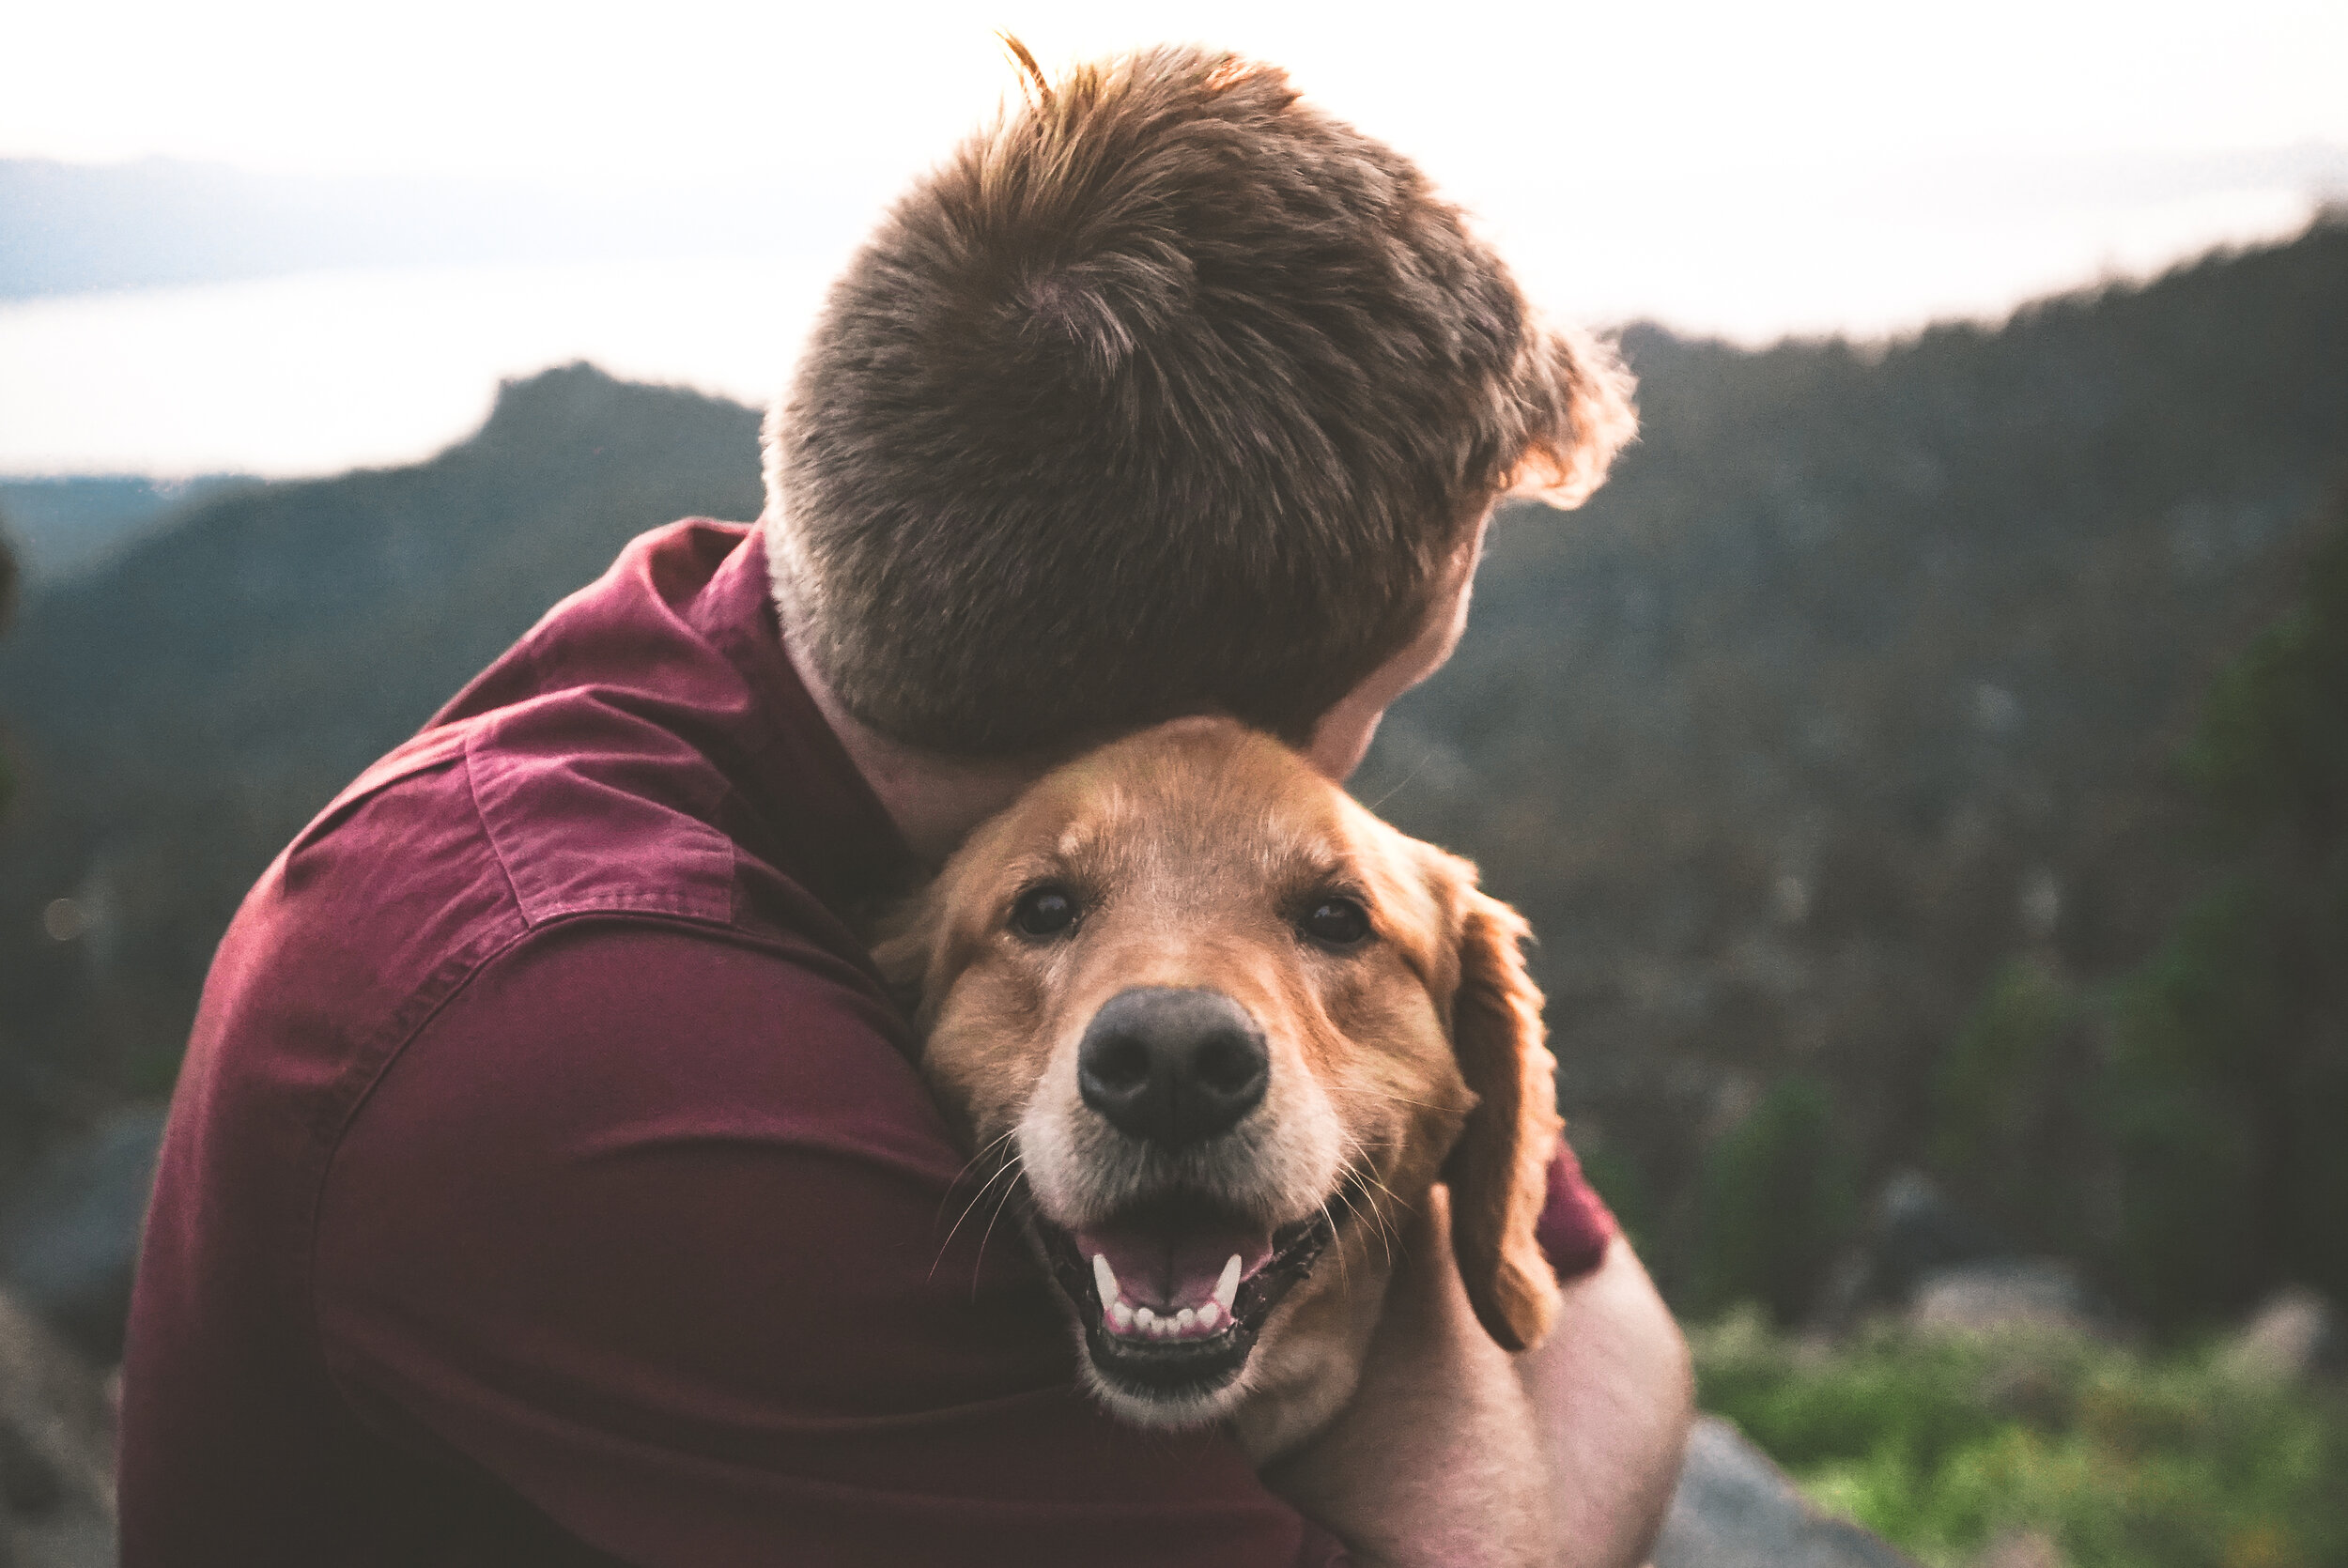 Pets are big for connection early in sober living